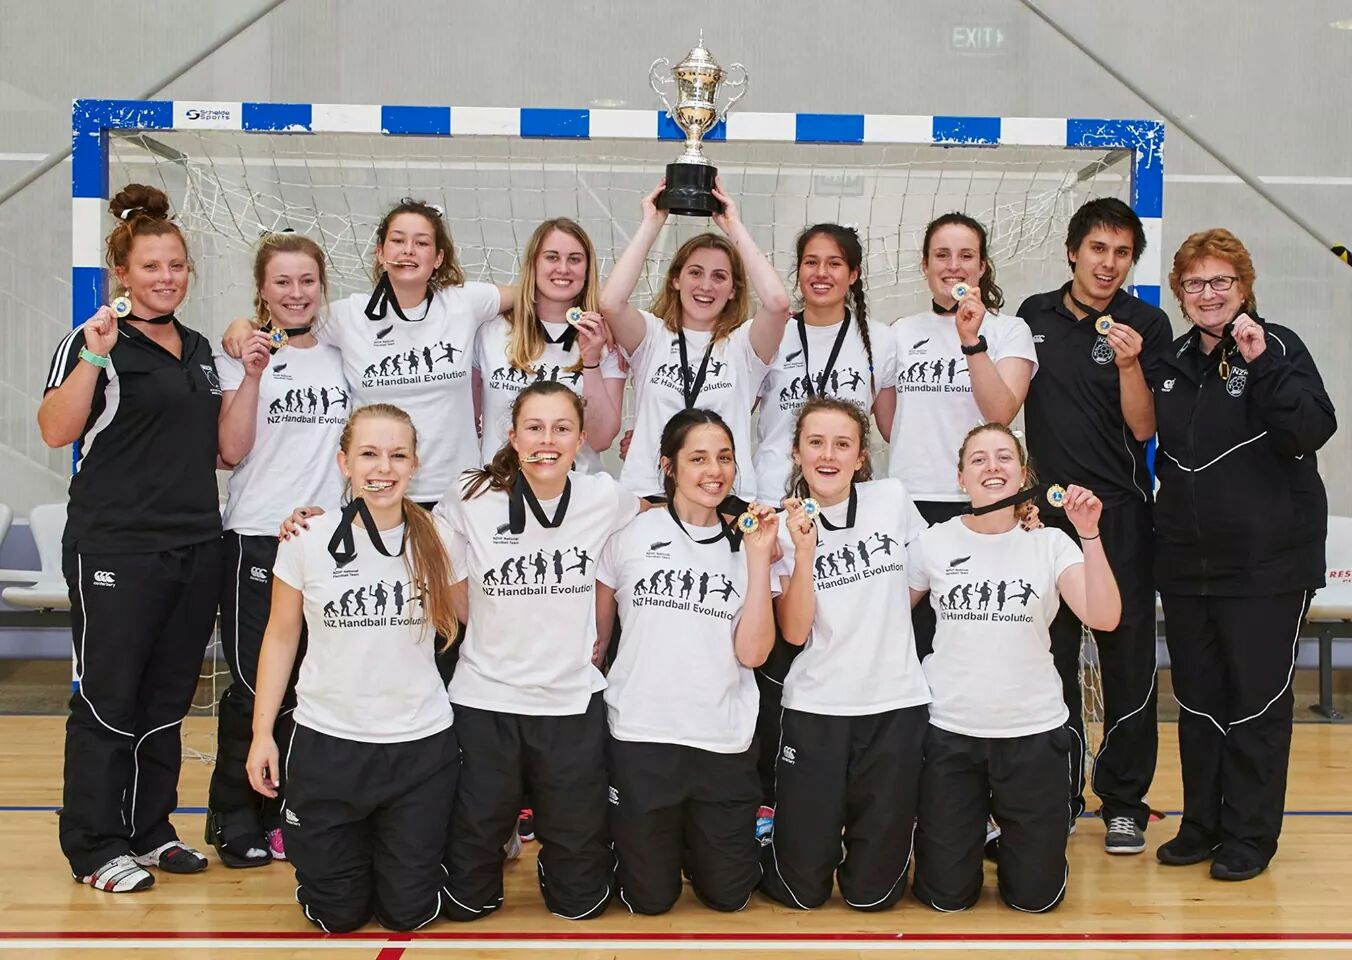 NZ Junior Women Team - IHF Trophy Winners 2014